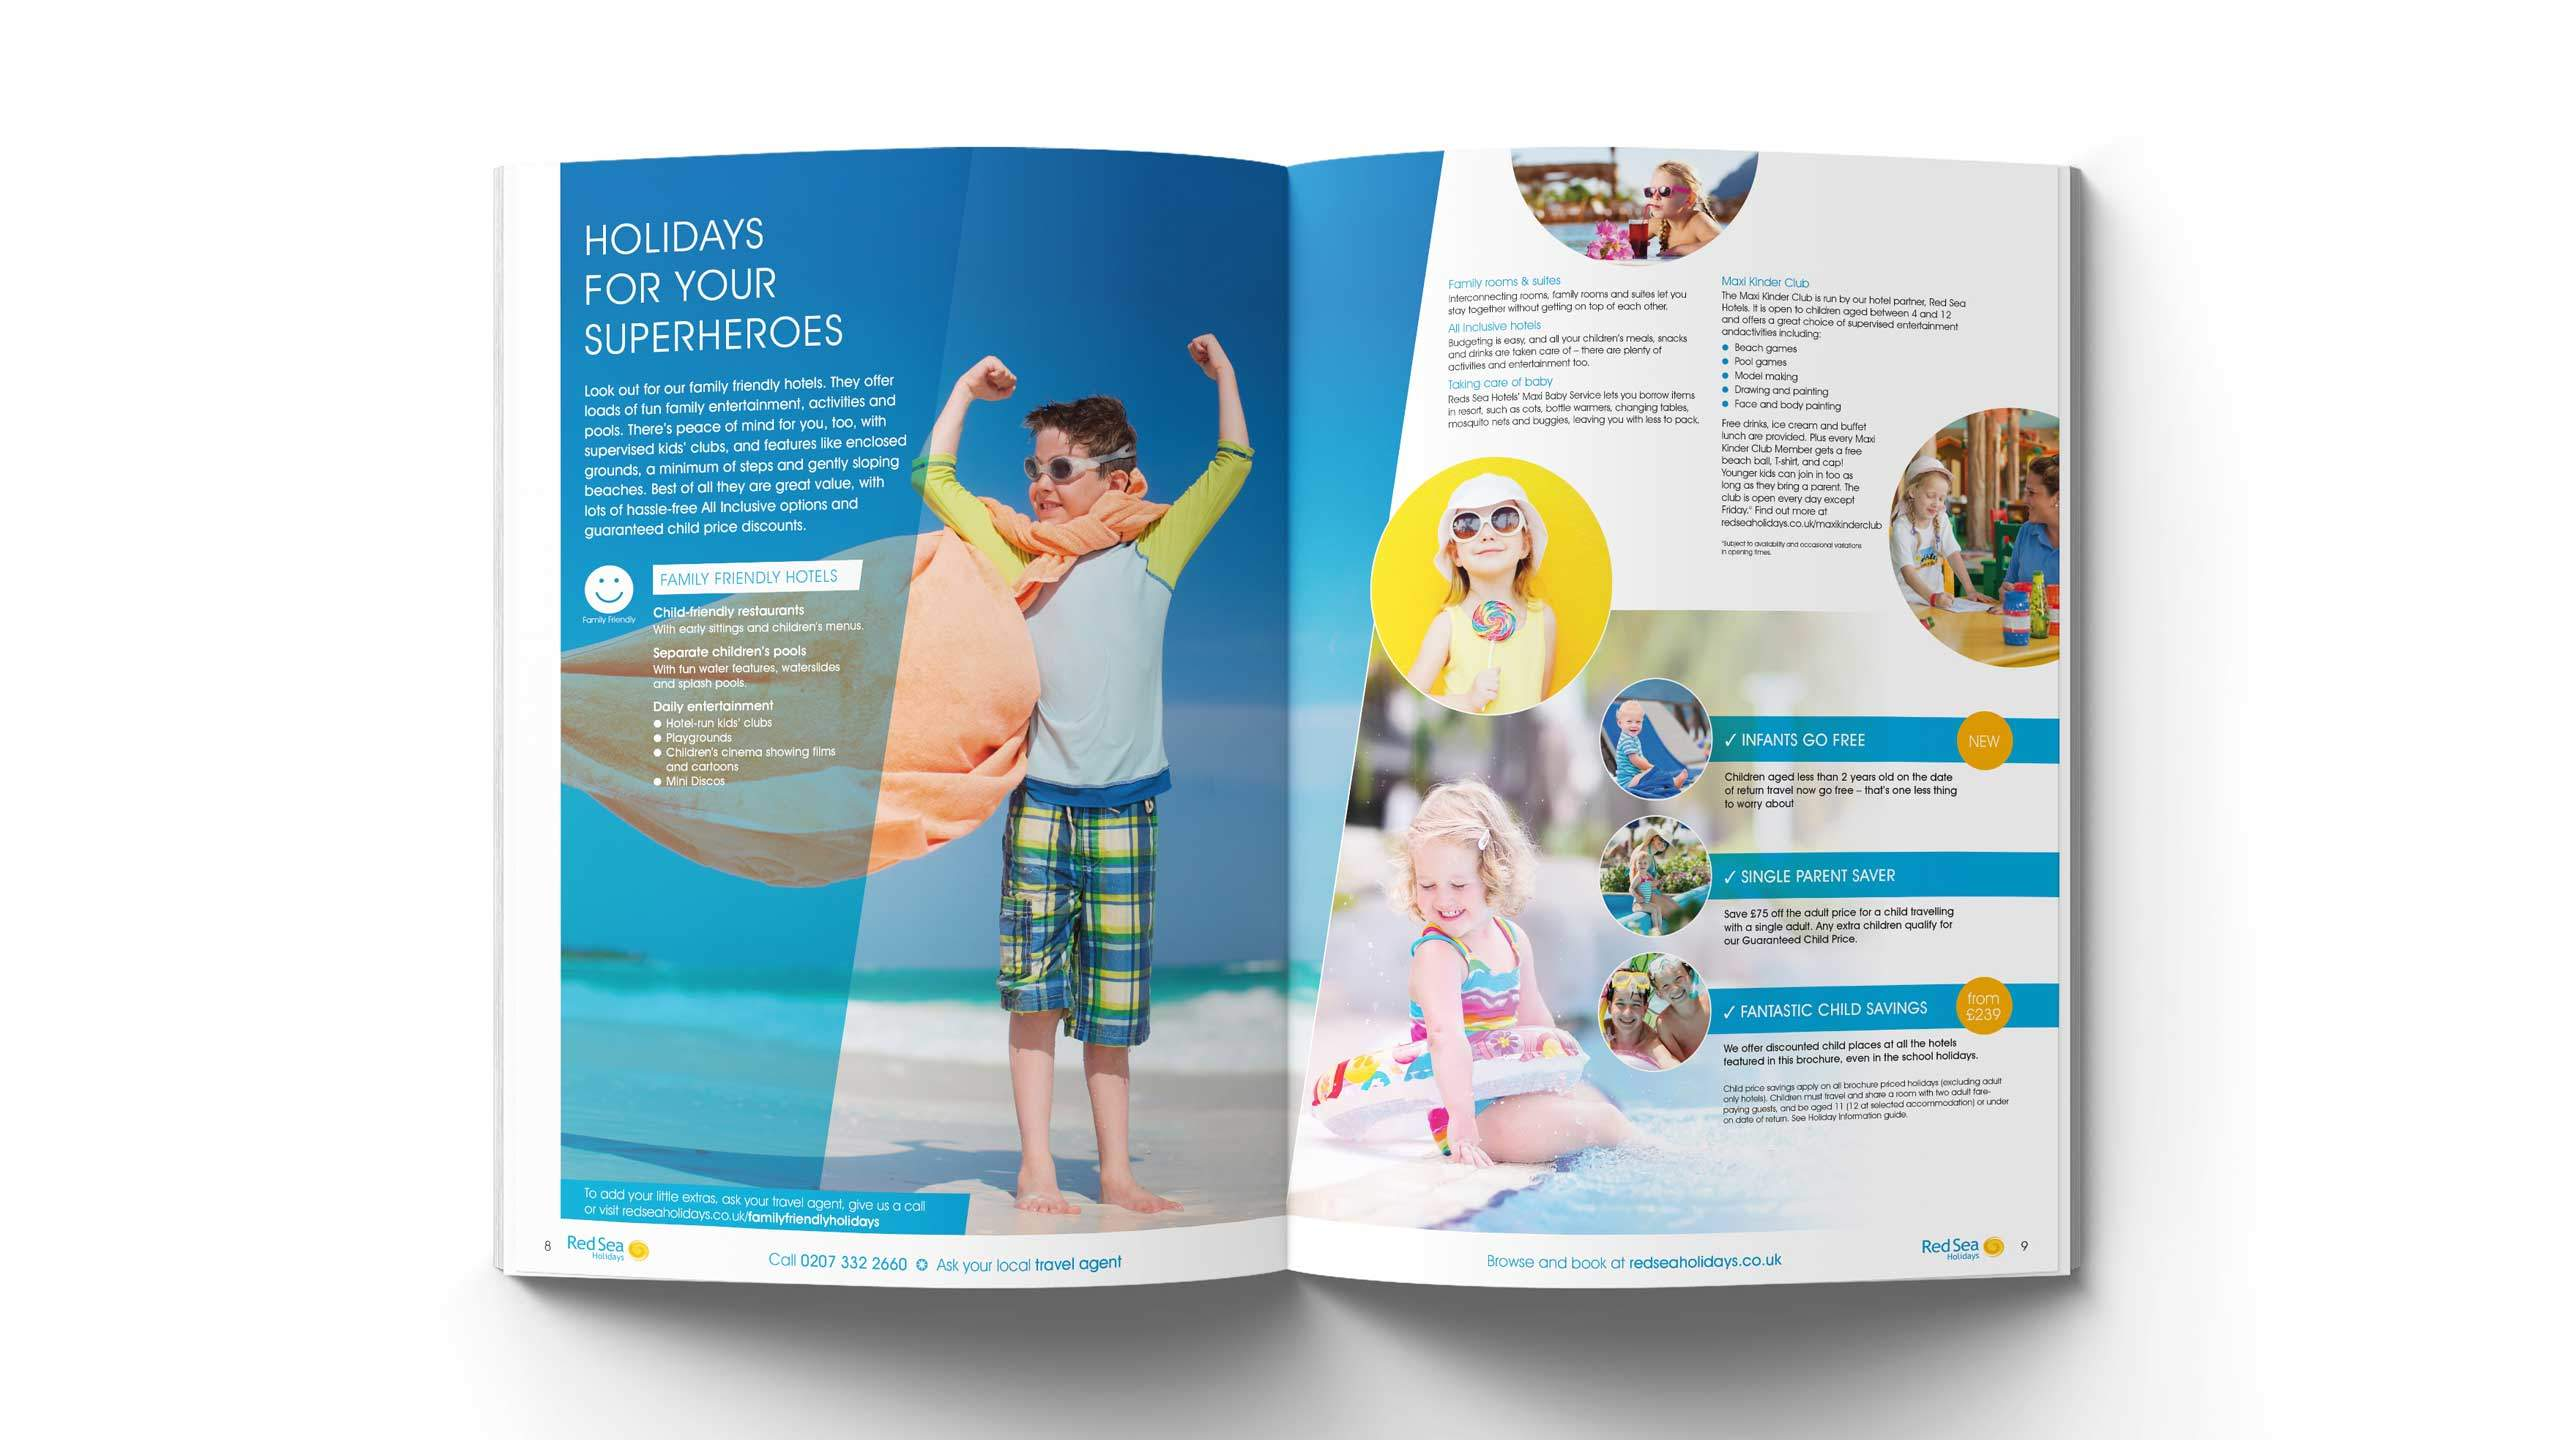 tour operator brochure design holidays for superheroes pages red sea holidays